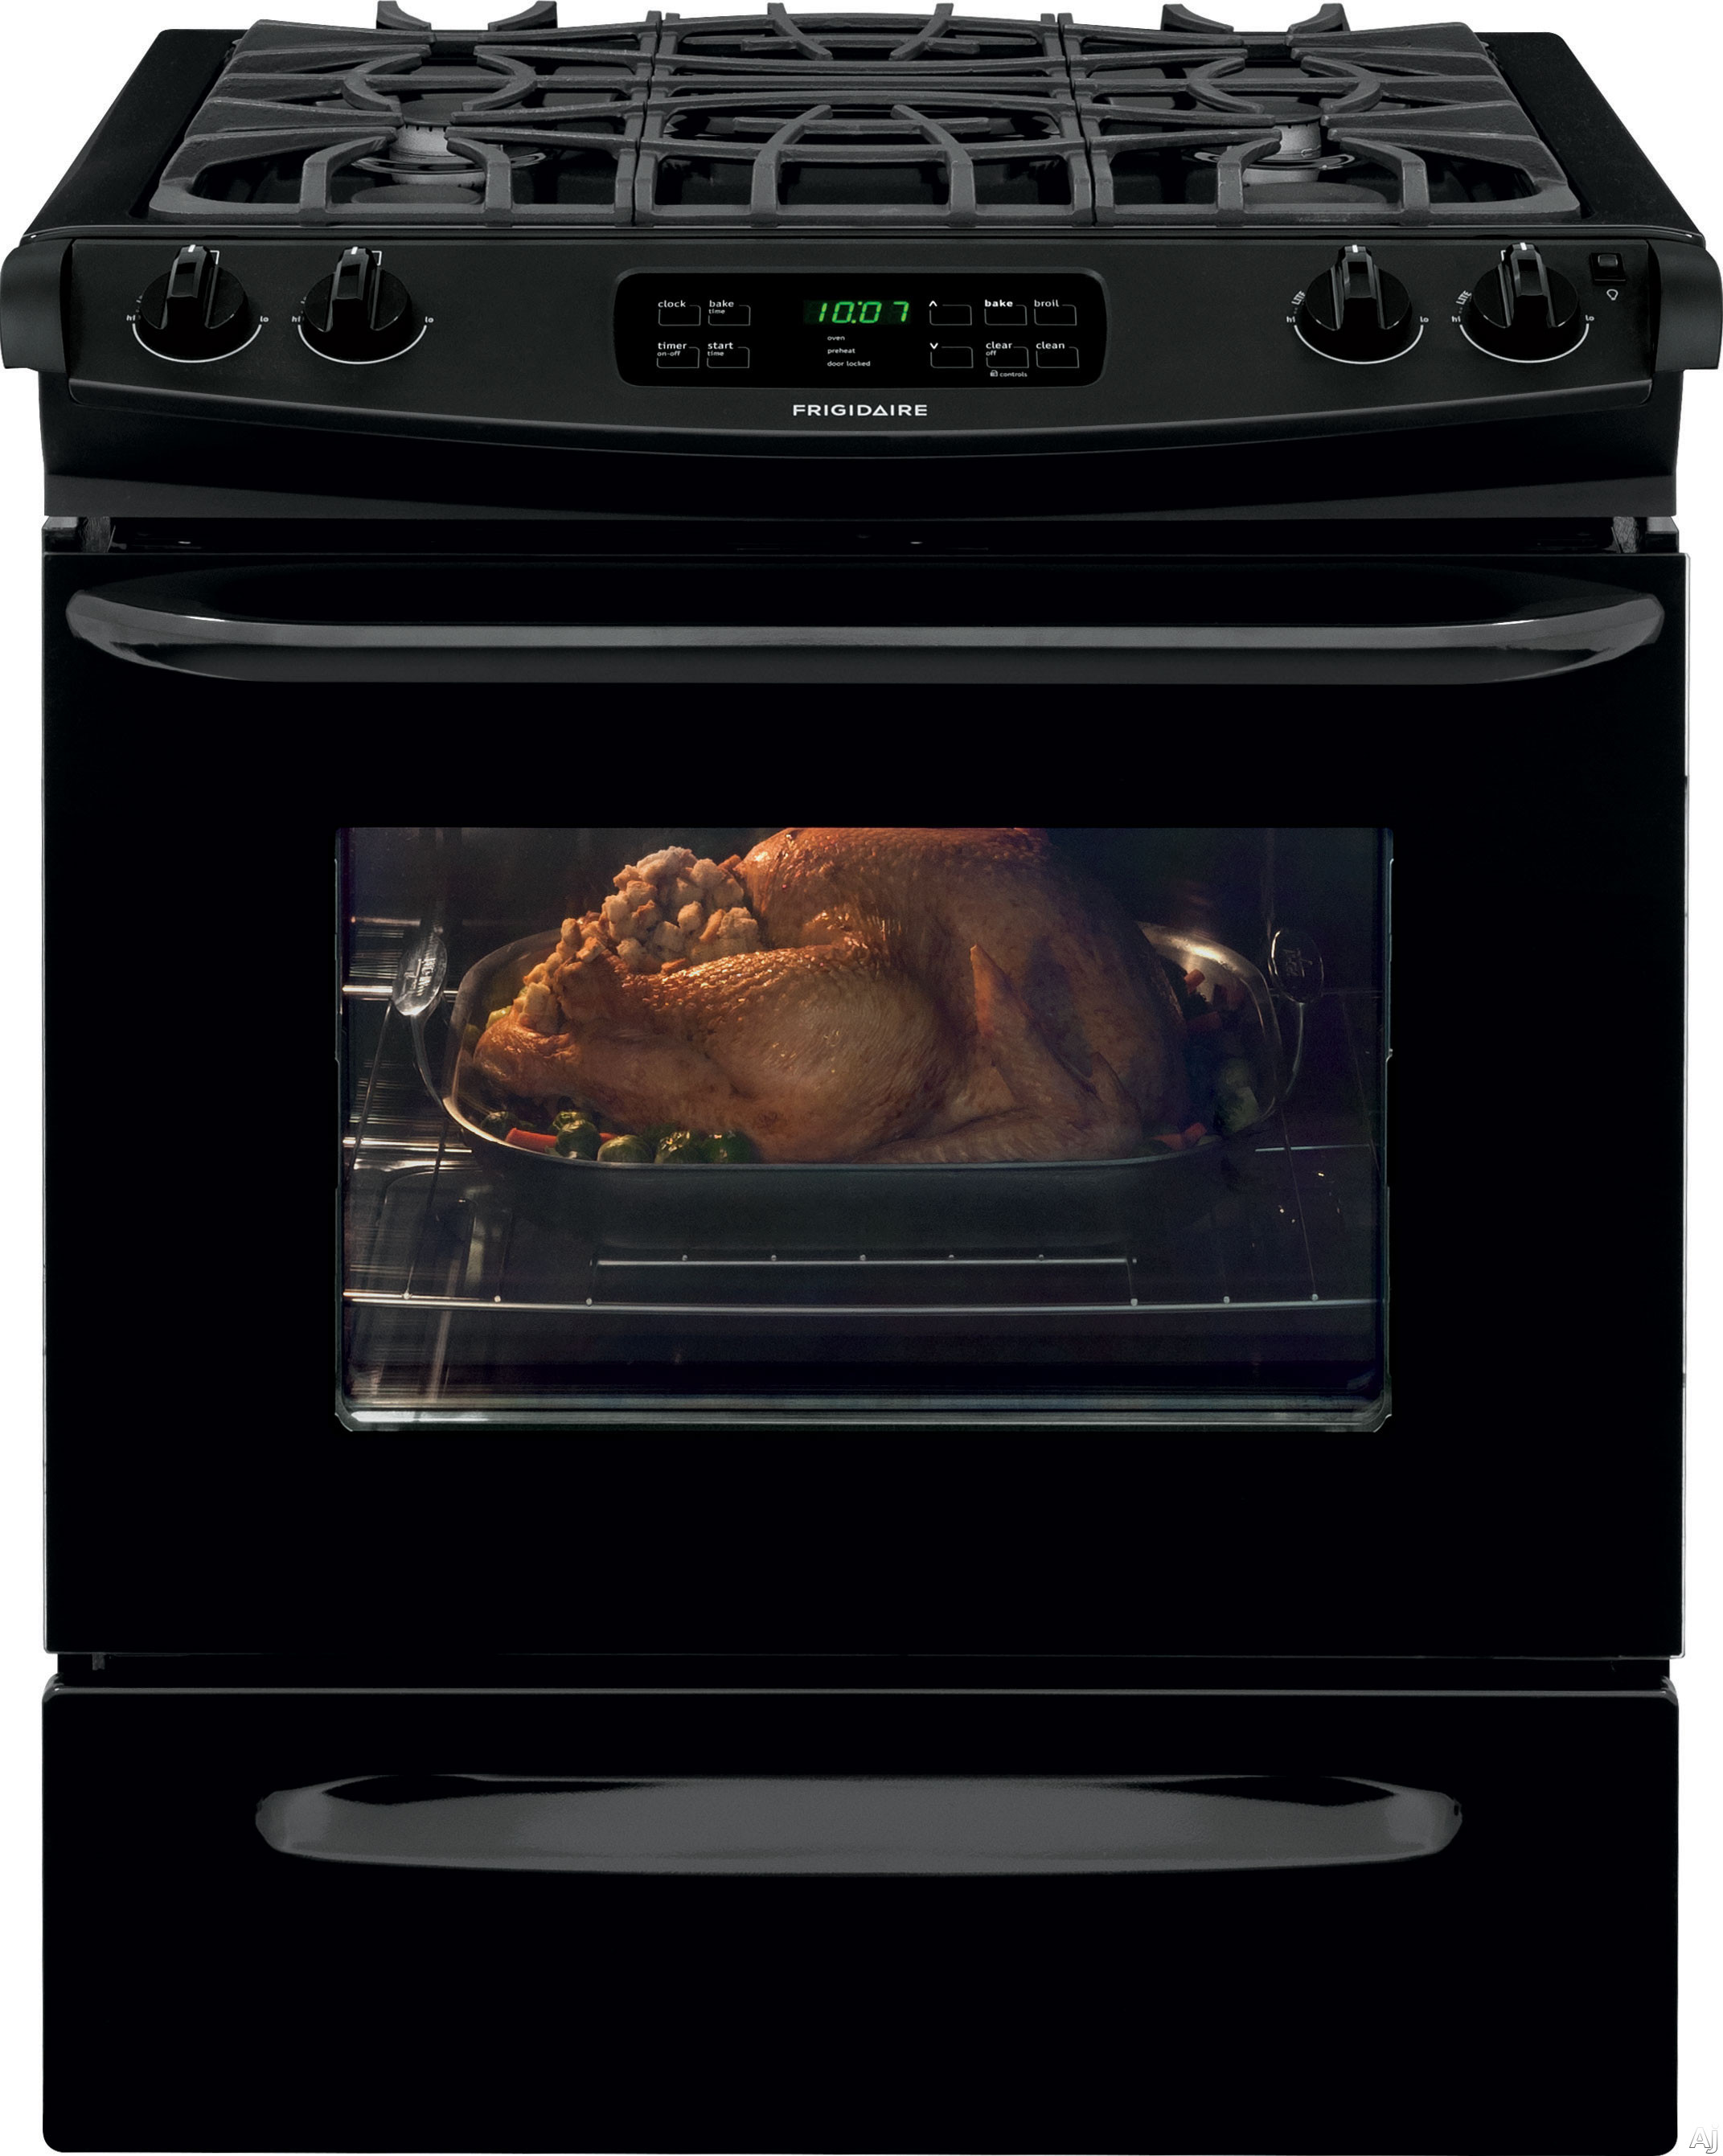 Frigidaire FFGS3025PB 30 Inch Slide-in Gas Range with Multiple Broil Options, Power Clean, Storage Drawer, Quick Clean, Delay Clean, Auto Oven Shut-Off, 4.5 cu. ft. Capacity, 4 Sealed Burners, Ready-S